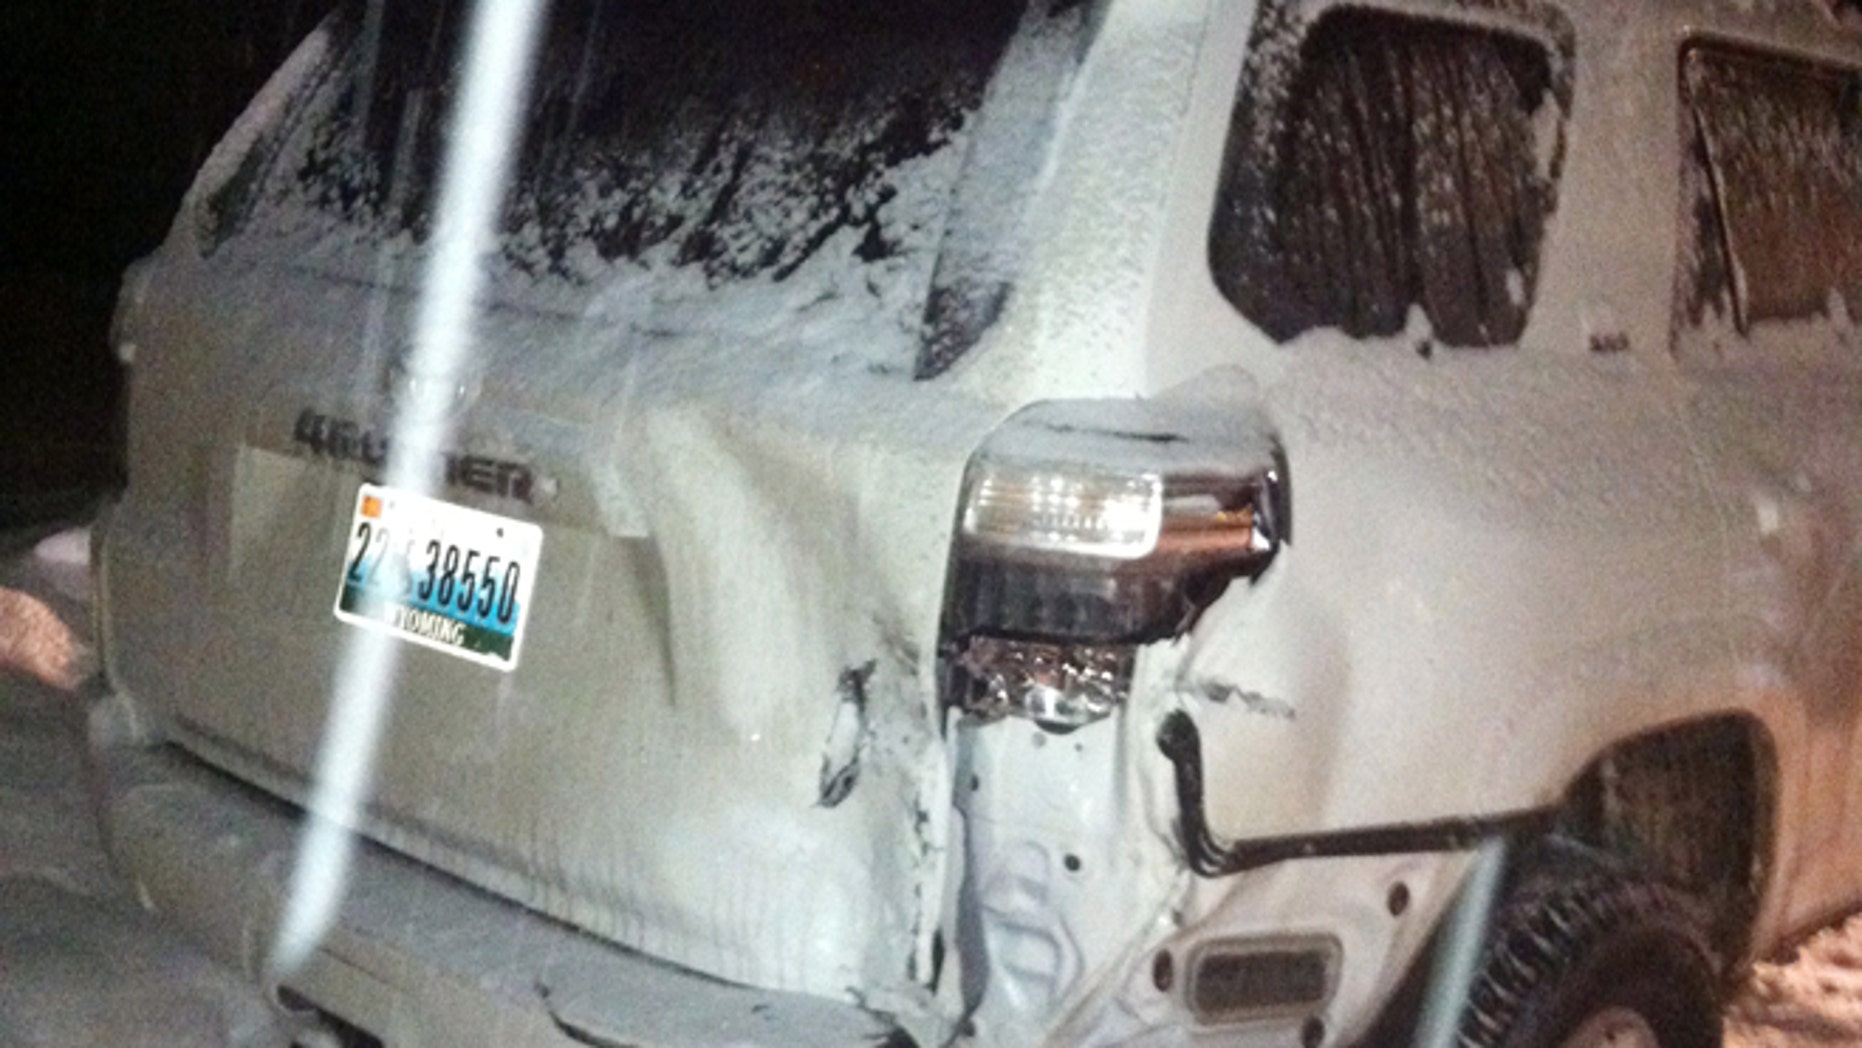 Dec. 28, 2014: This photo provided by the Aspen Police Department shows one of the two vehicles involved in a hit-and-run in Aspen, Colo. (AP)